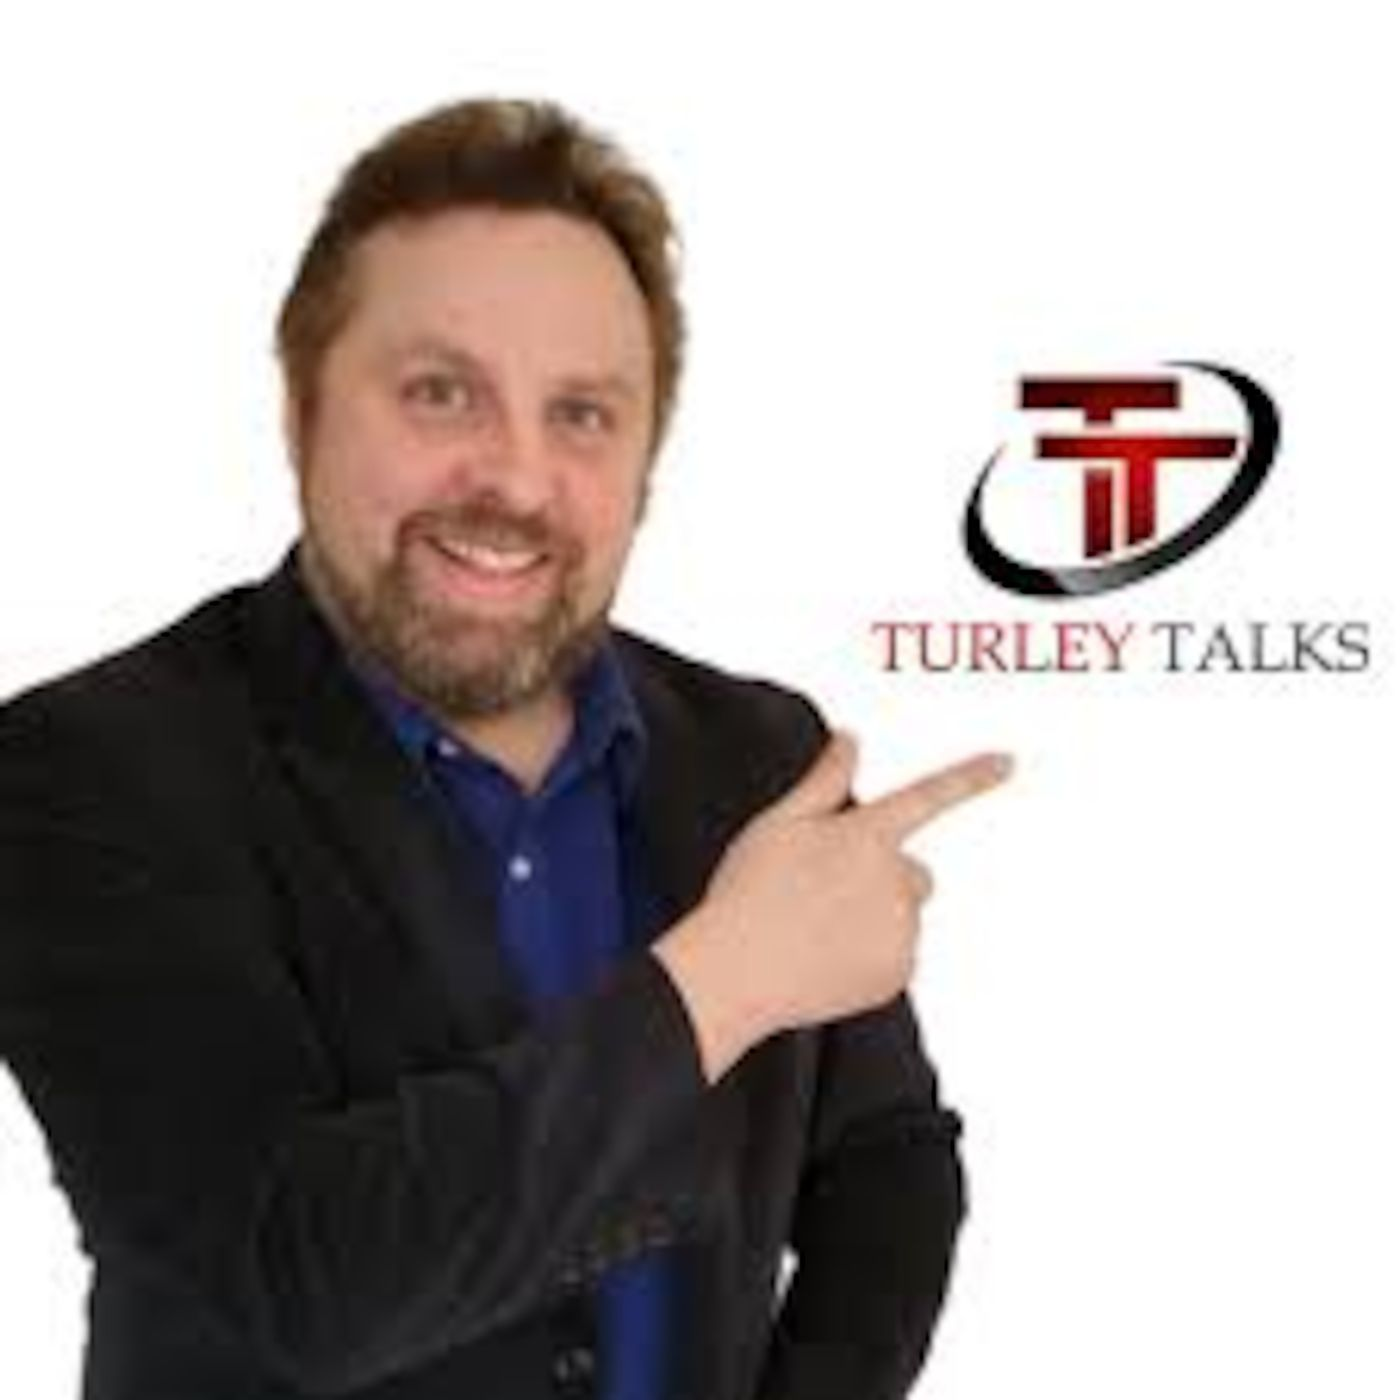 Charles Moscowitz and Steve Turley discuss the new nationalism